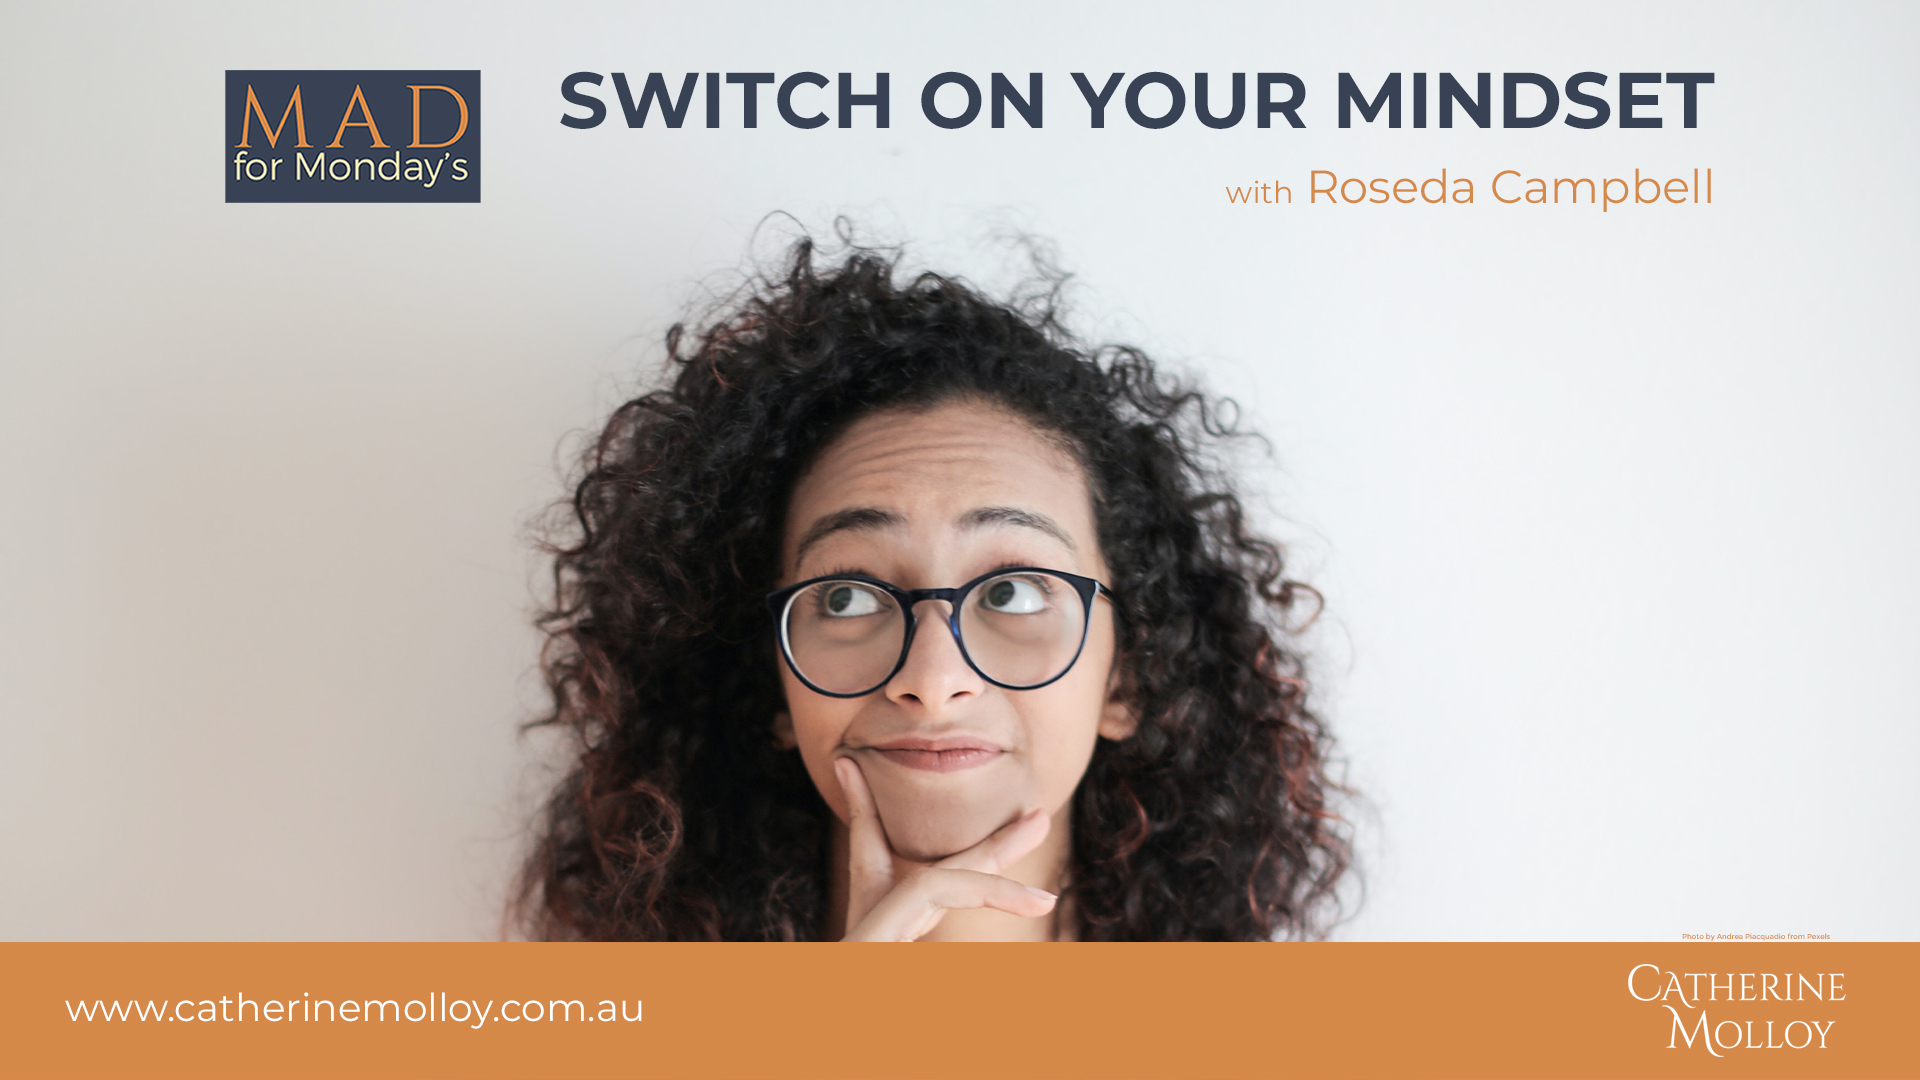 MAD for Monday's – Switch on your Mindset